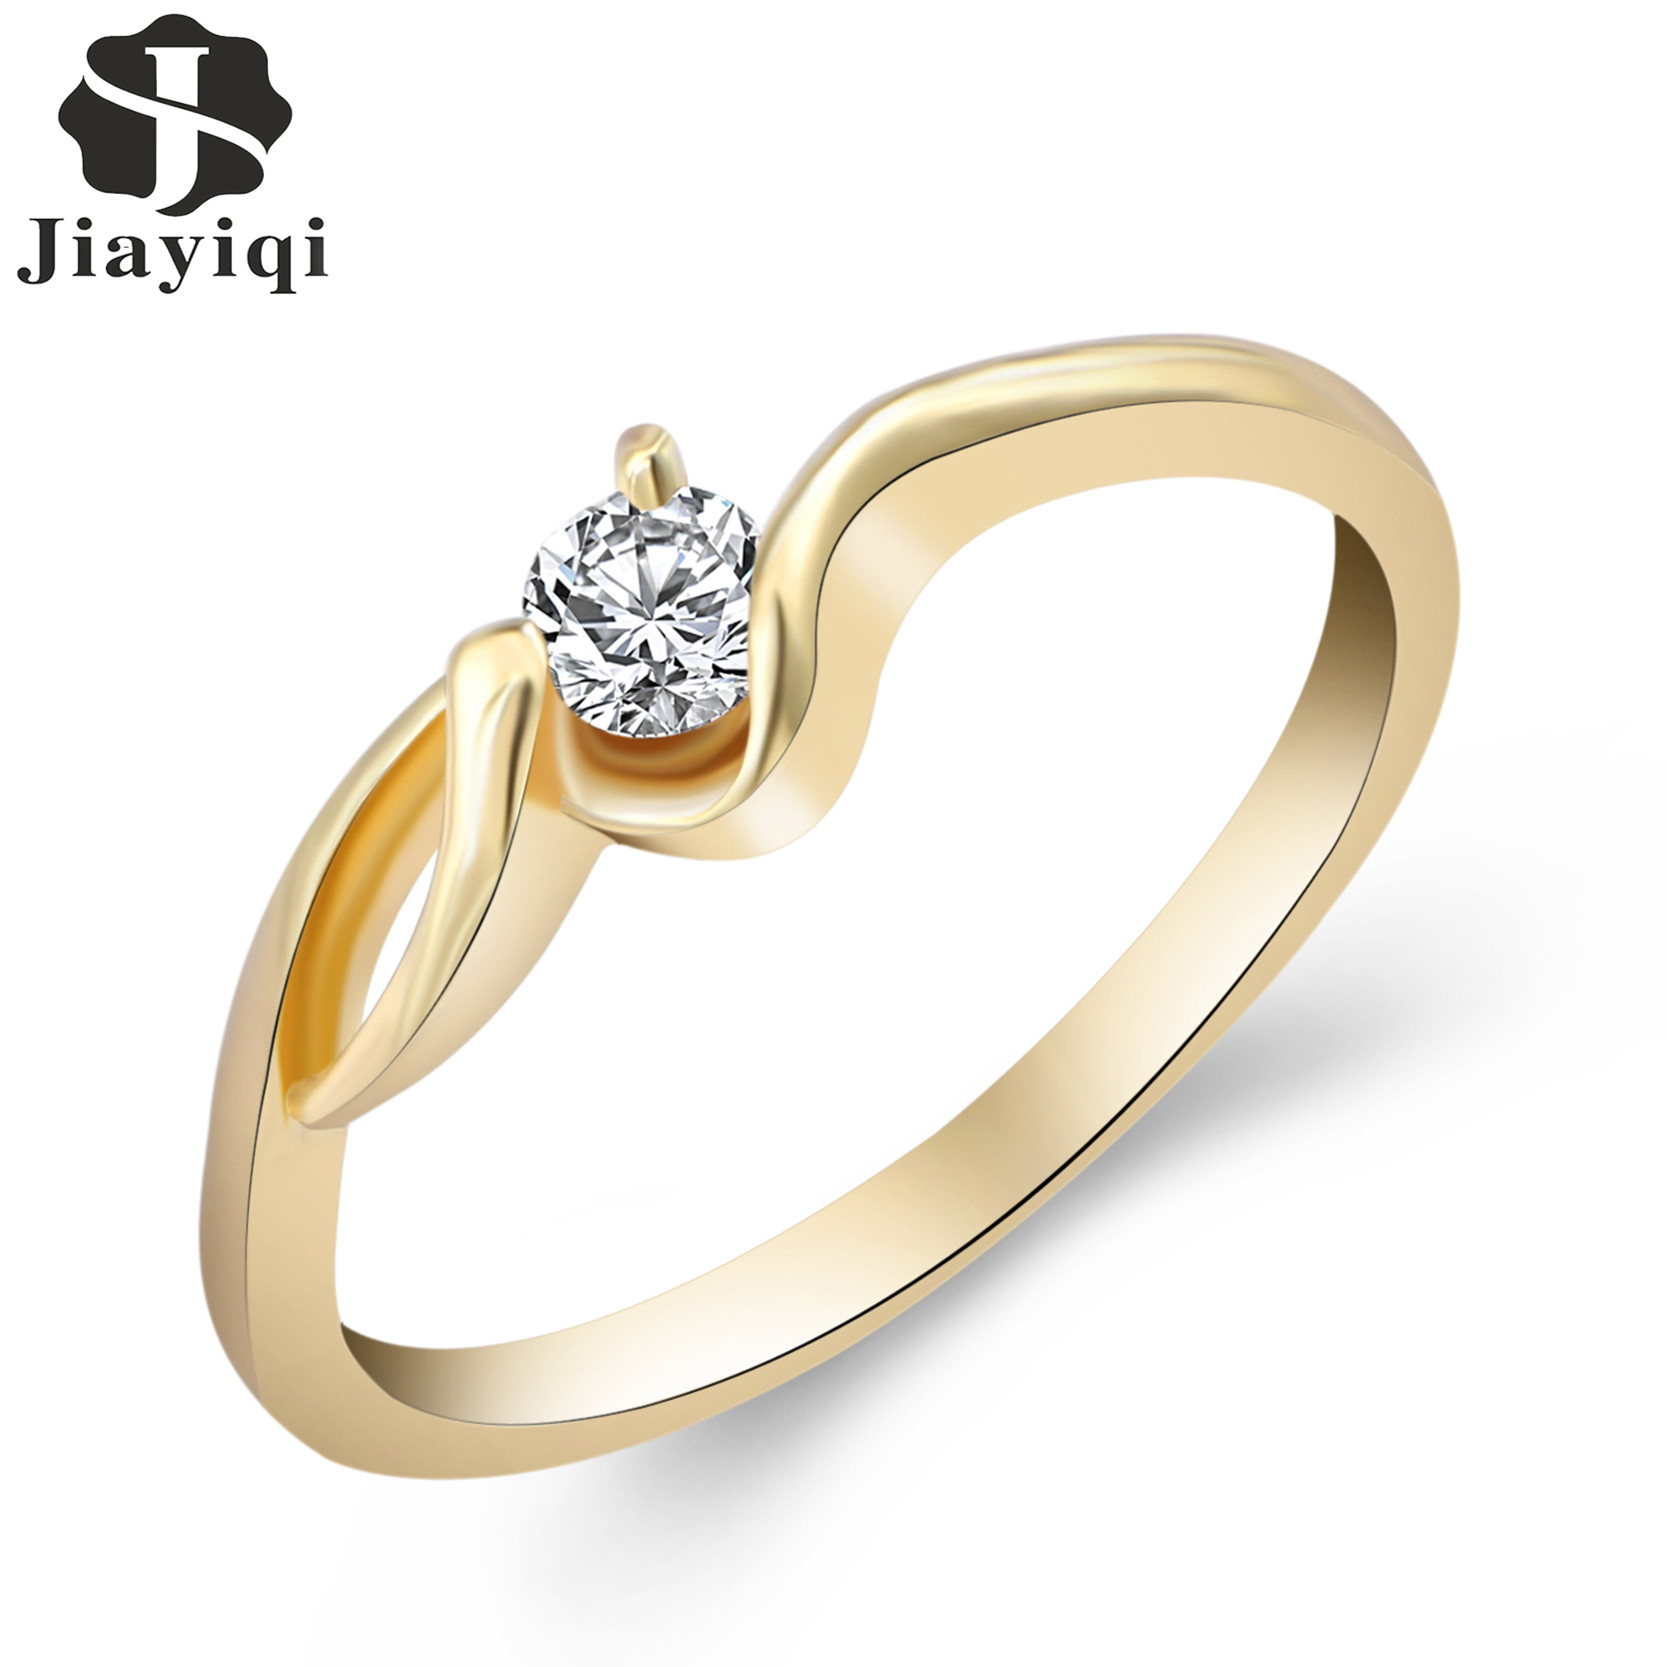 lady vintage rings gold color round cut white crystal cubic zirconia new engagement ring for women - Sell Wedding Ring